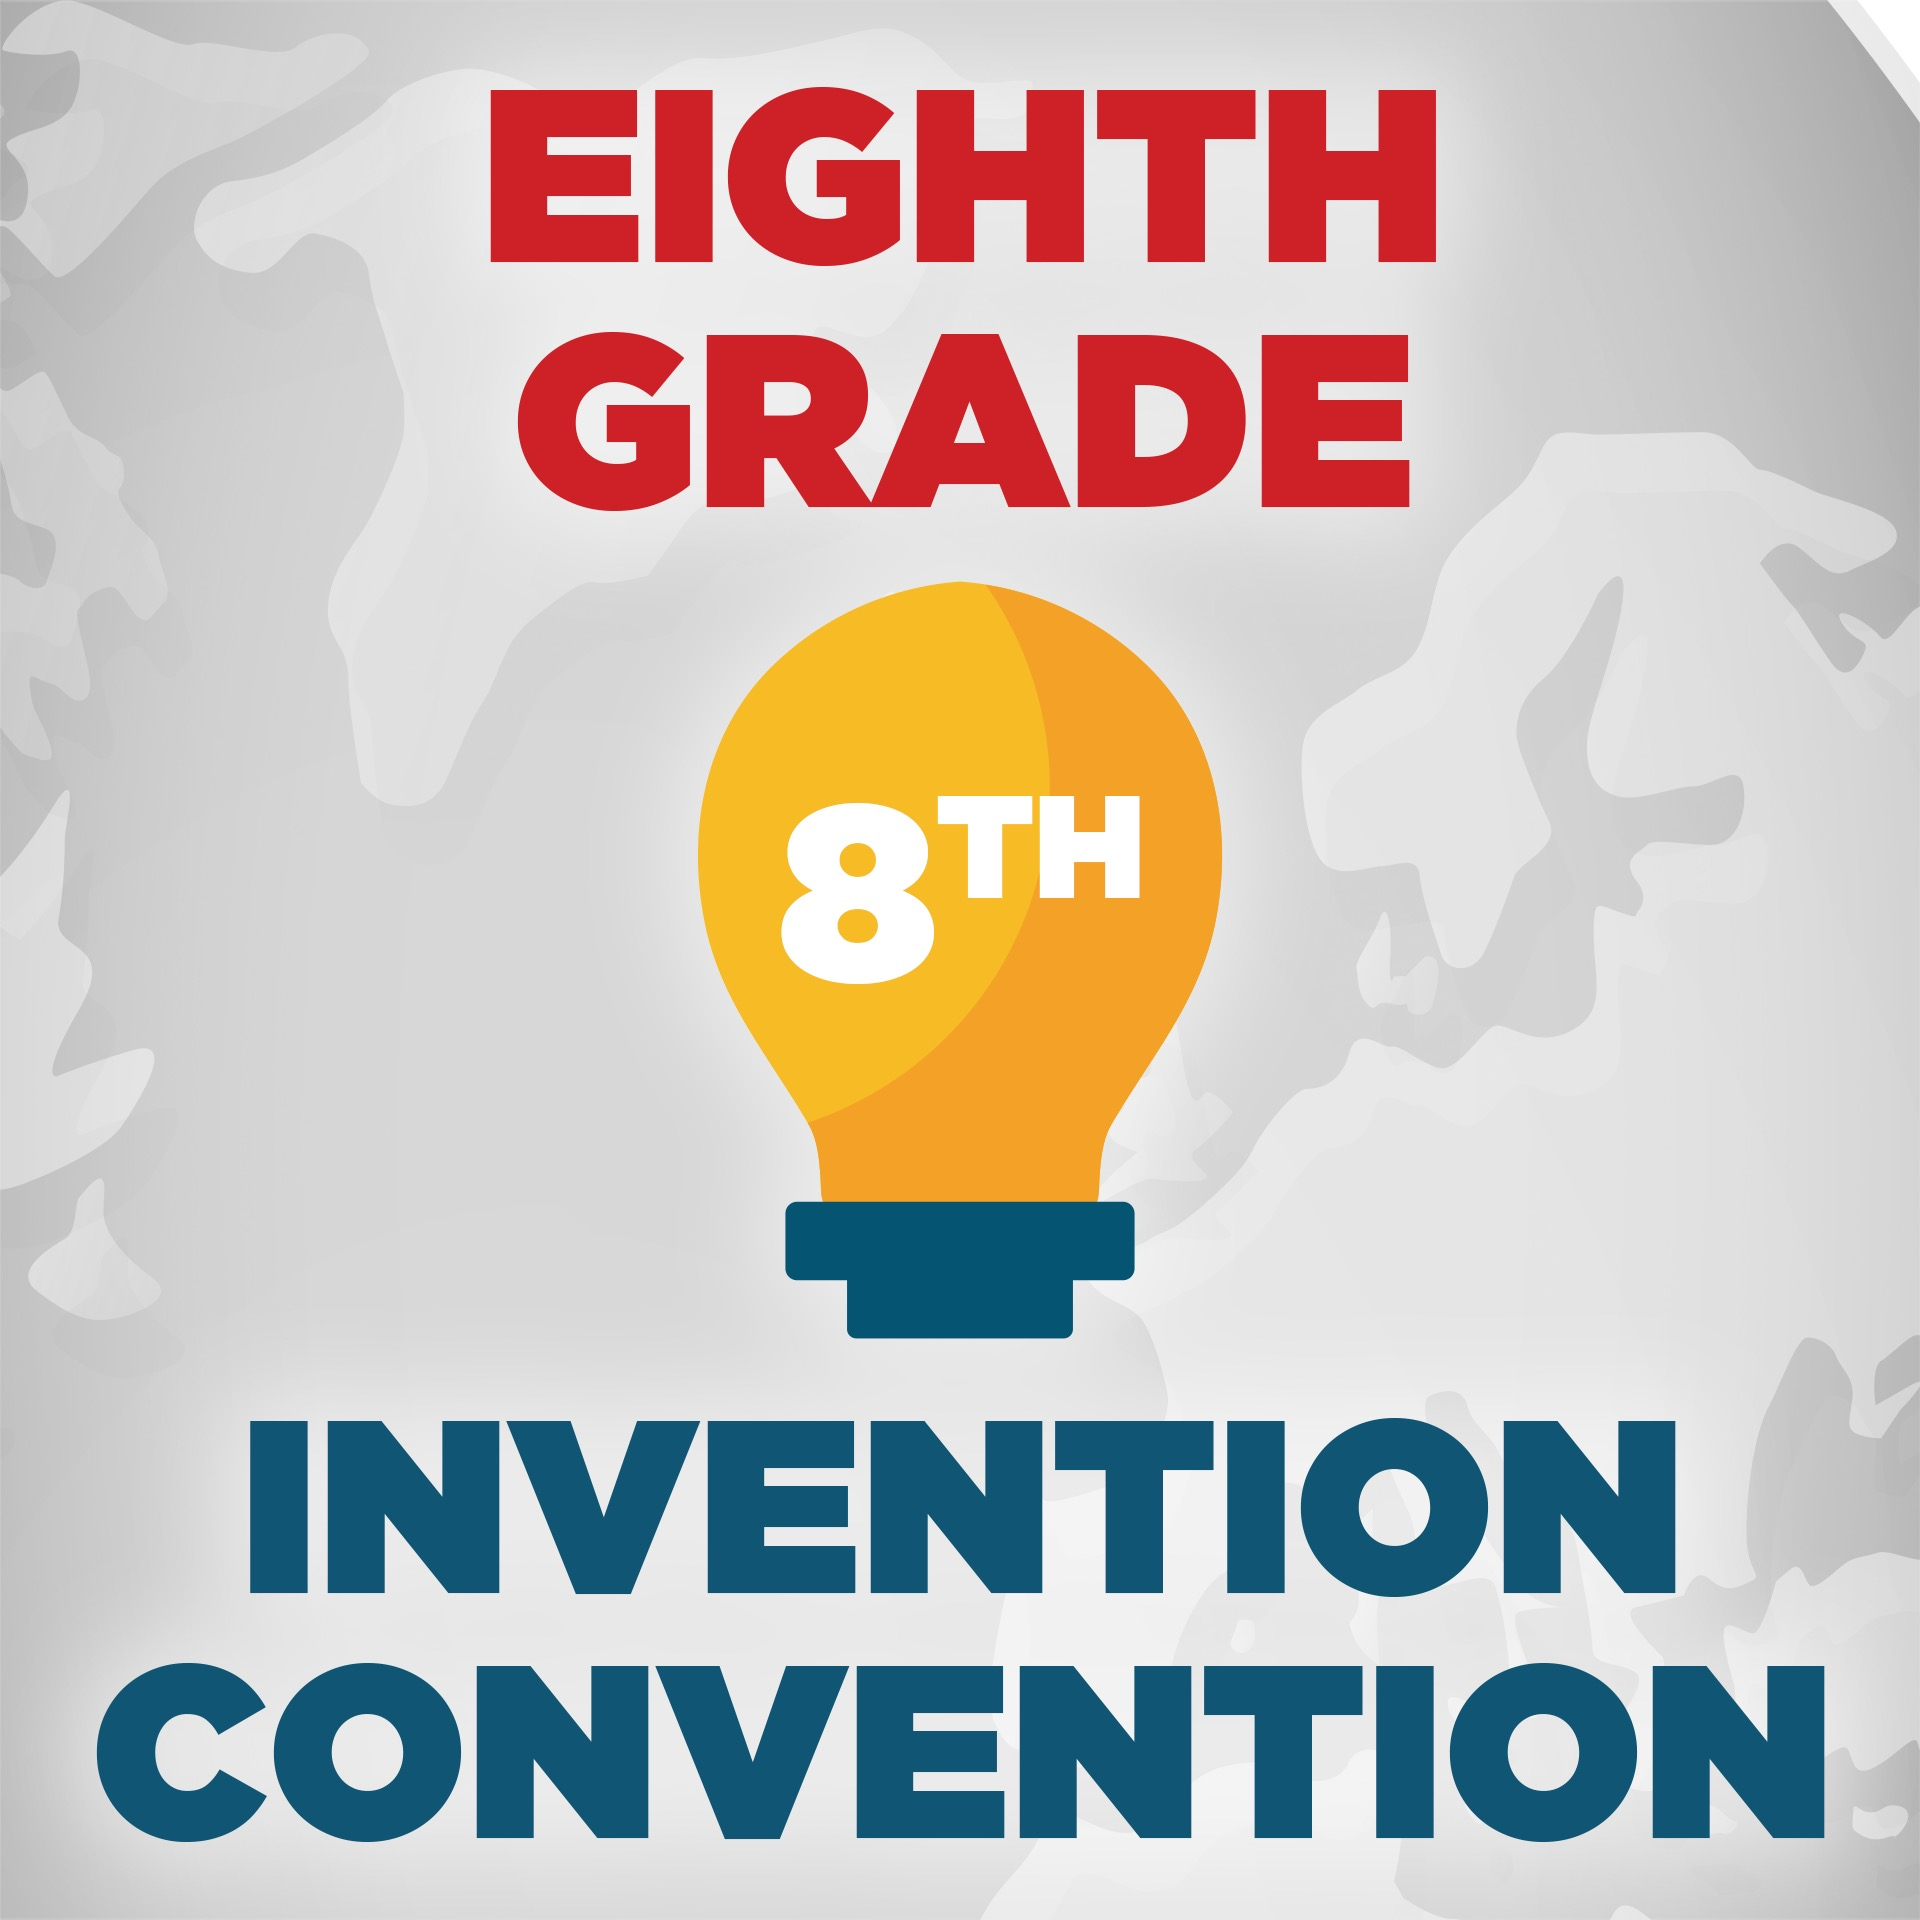 8th Invention Convention copy